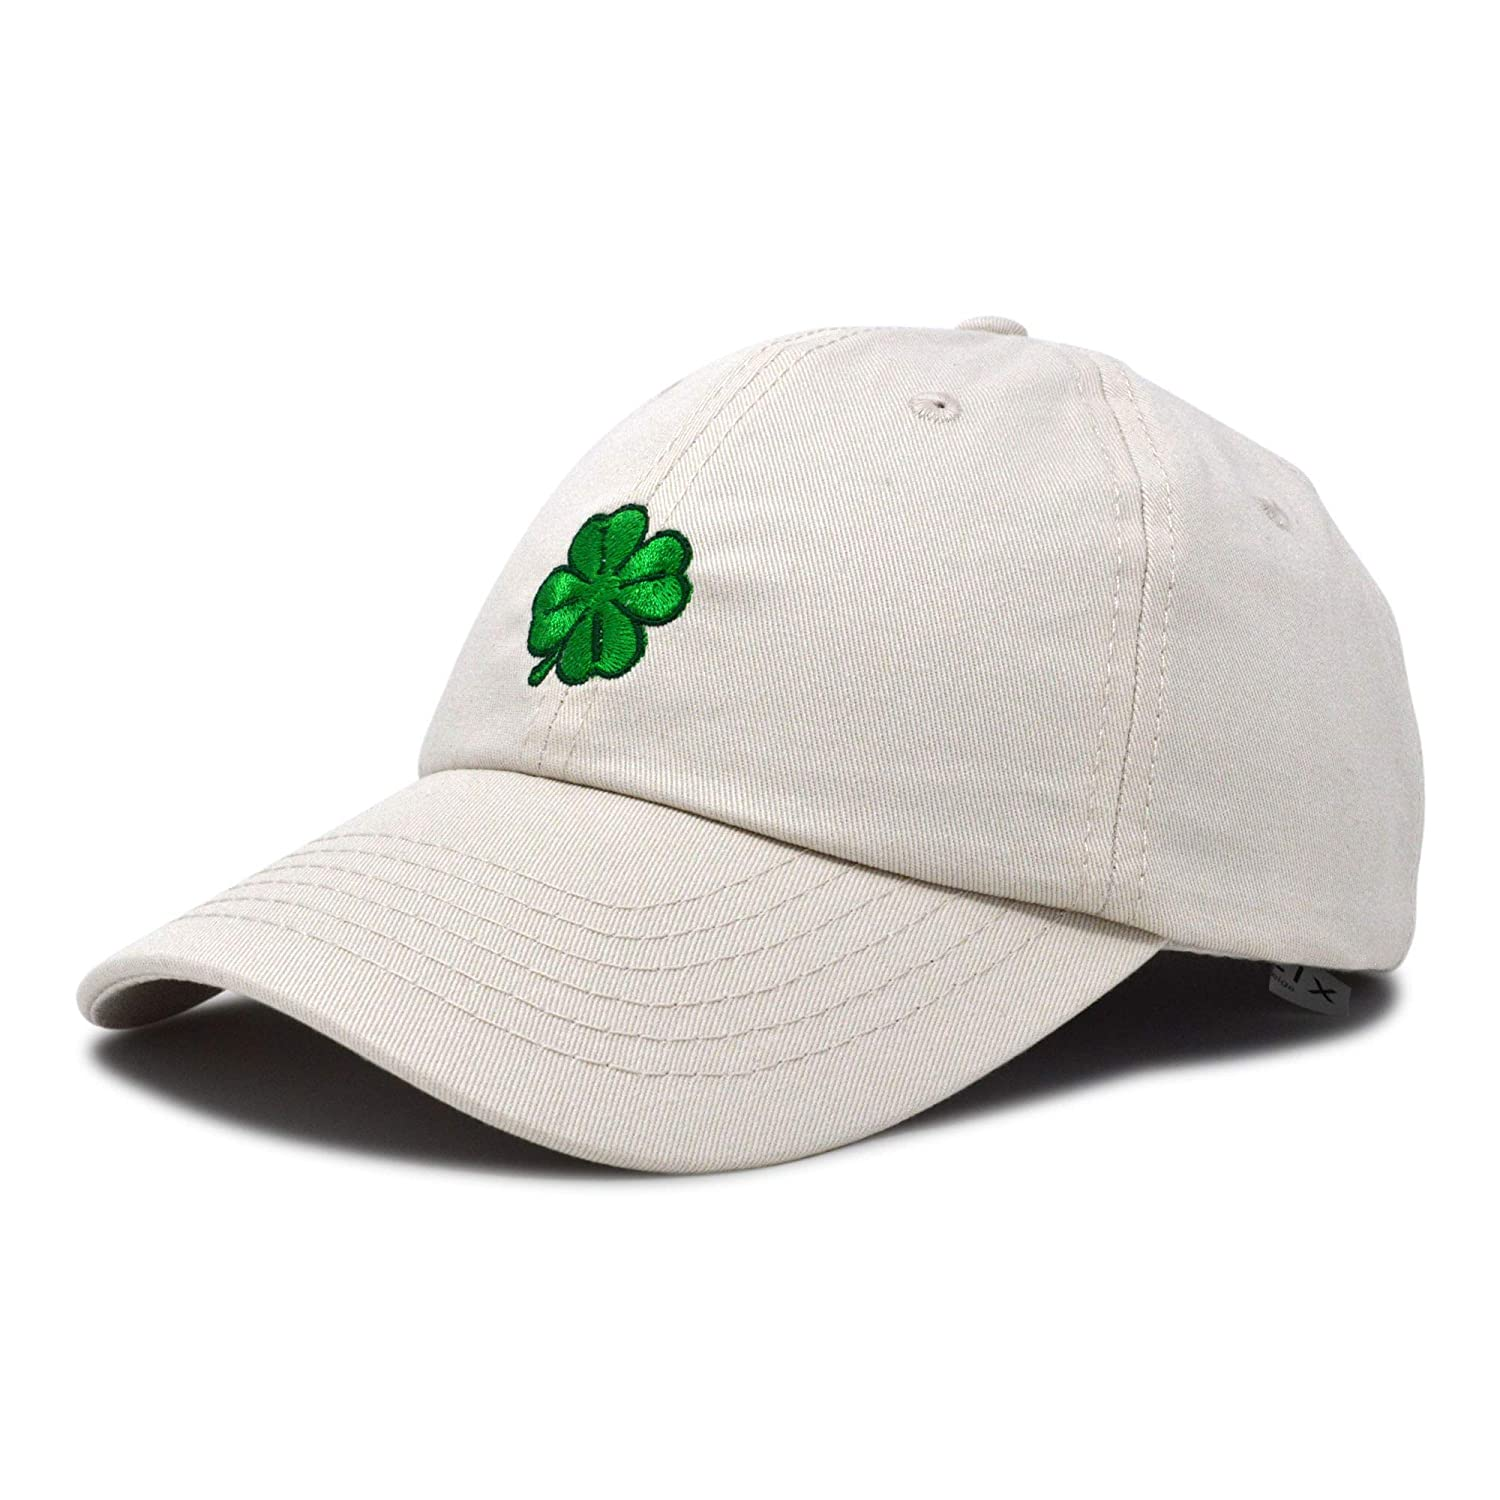 91bd334769d79 Amazon.com  DALIX Four Leaf Clover Hat Baseball Cap St. Patrick s Day  Cotton Caps Beige  Clothing